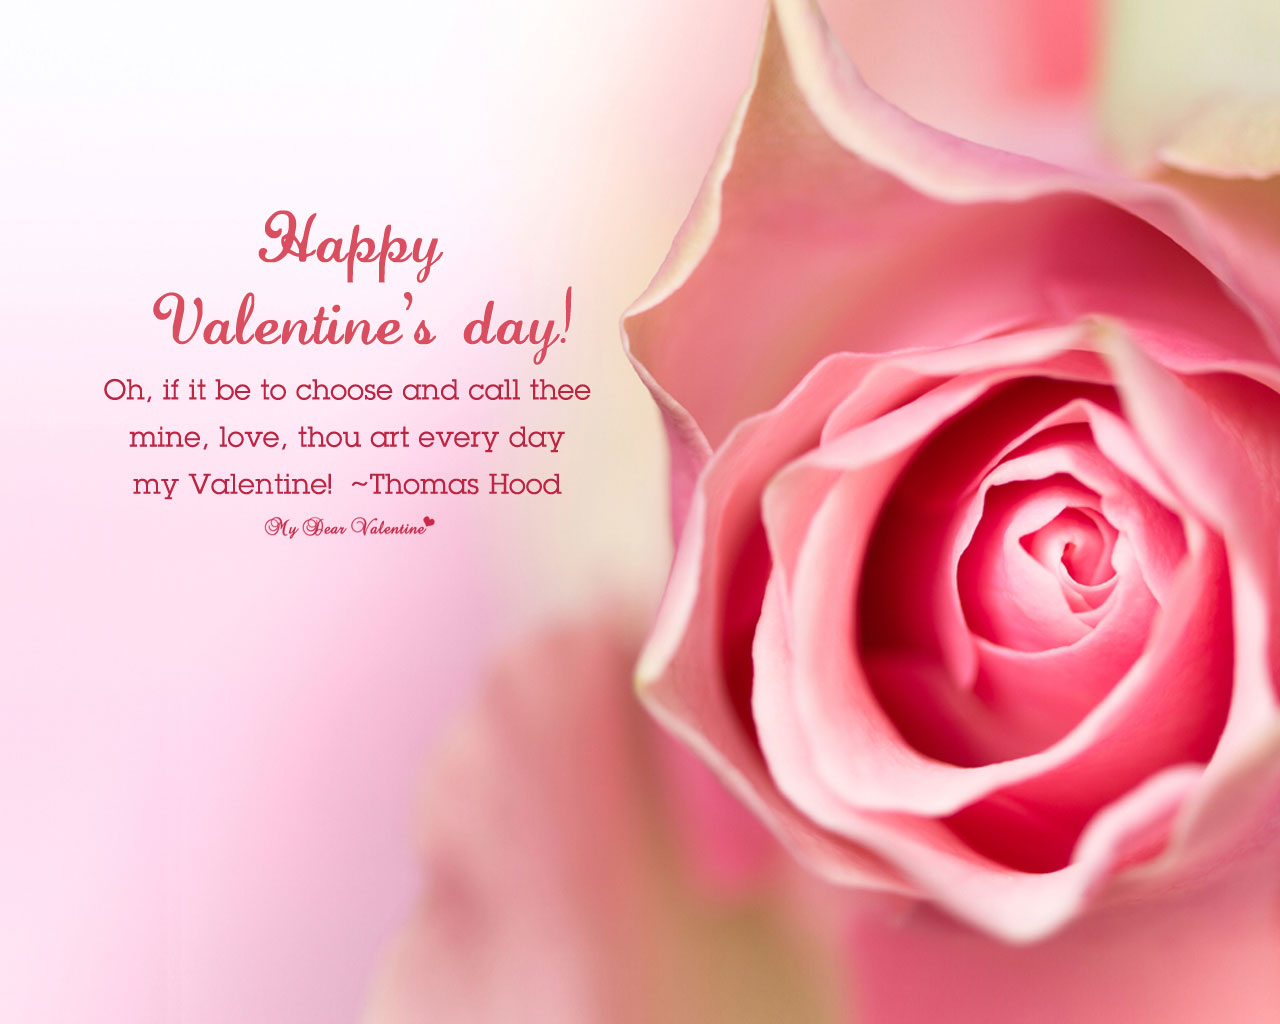 Best Happy Valentines Day Quotes And Wishes 2016